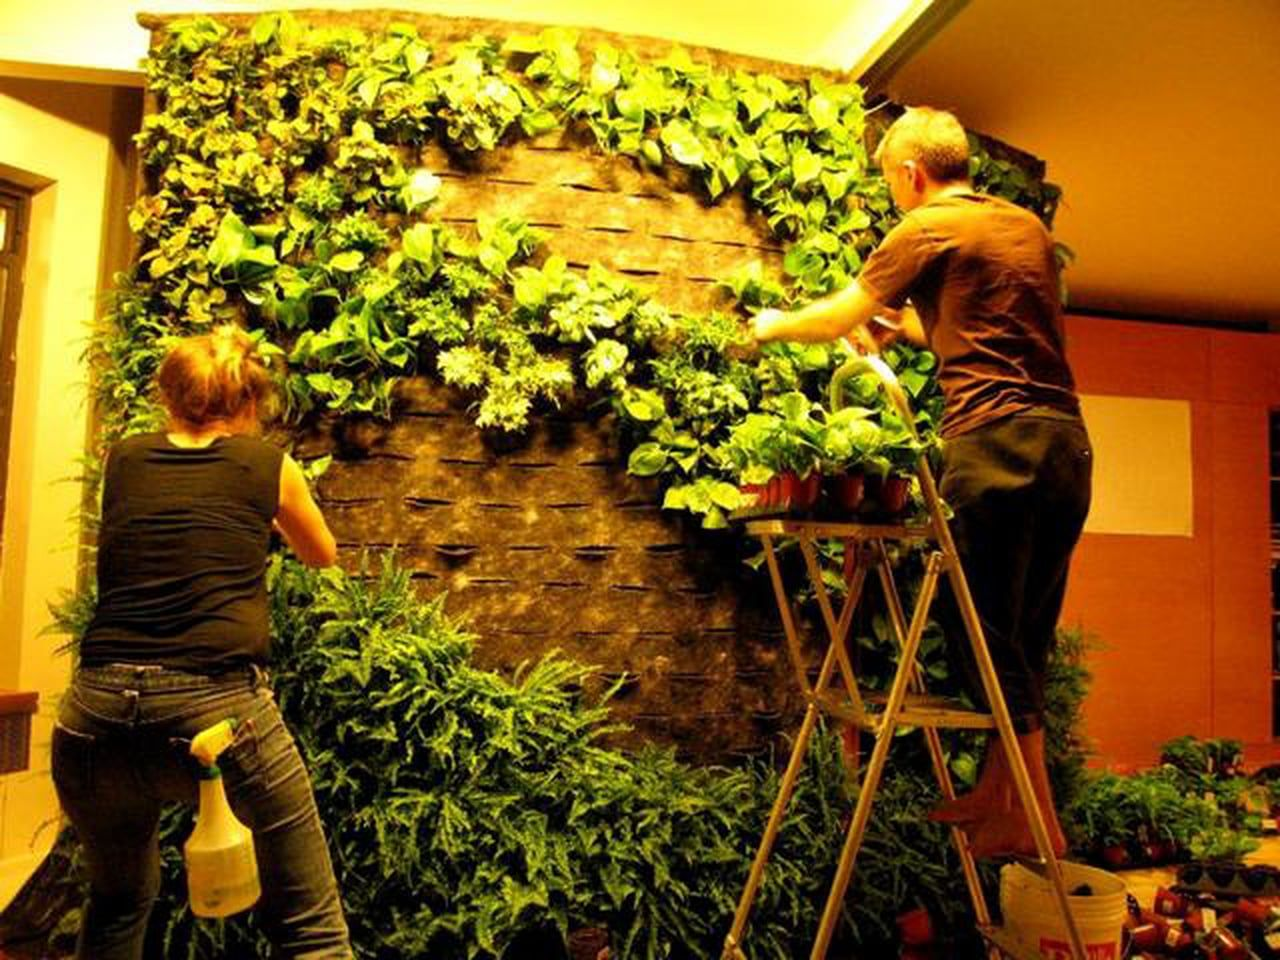 Living Wall Make Your Own. living walls bring container gardening ...